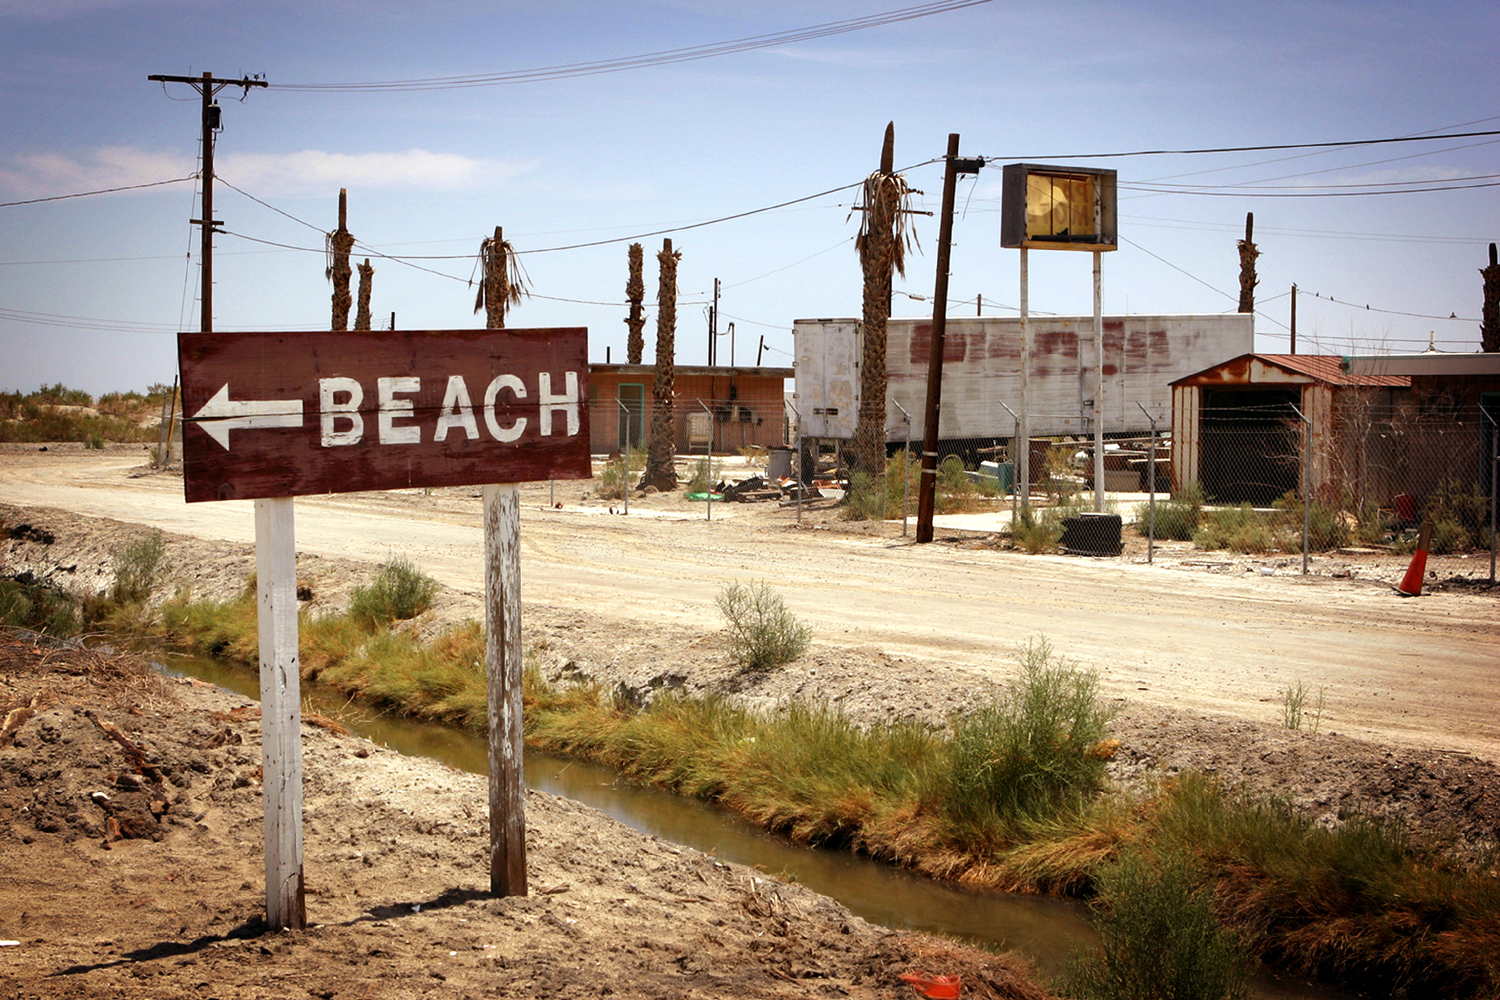 salton city Welcome to salton city realty we've been serving the wonderful community of salton city for the past 11 years our knowledge and expertise can help you find the right property for any situation.